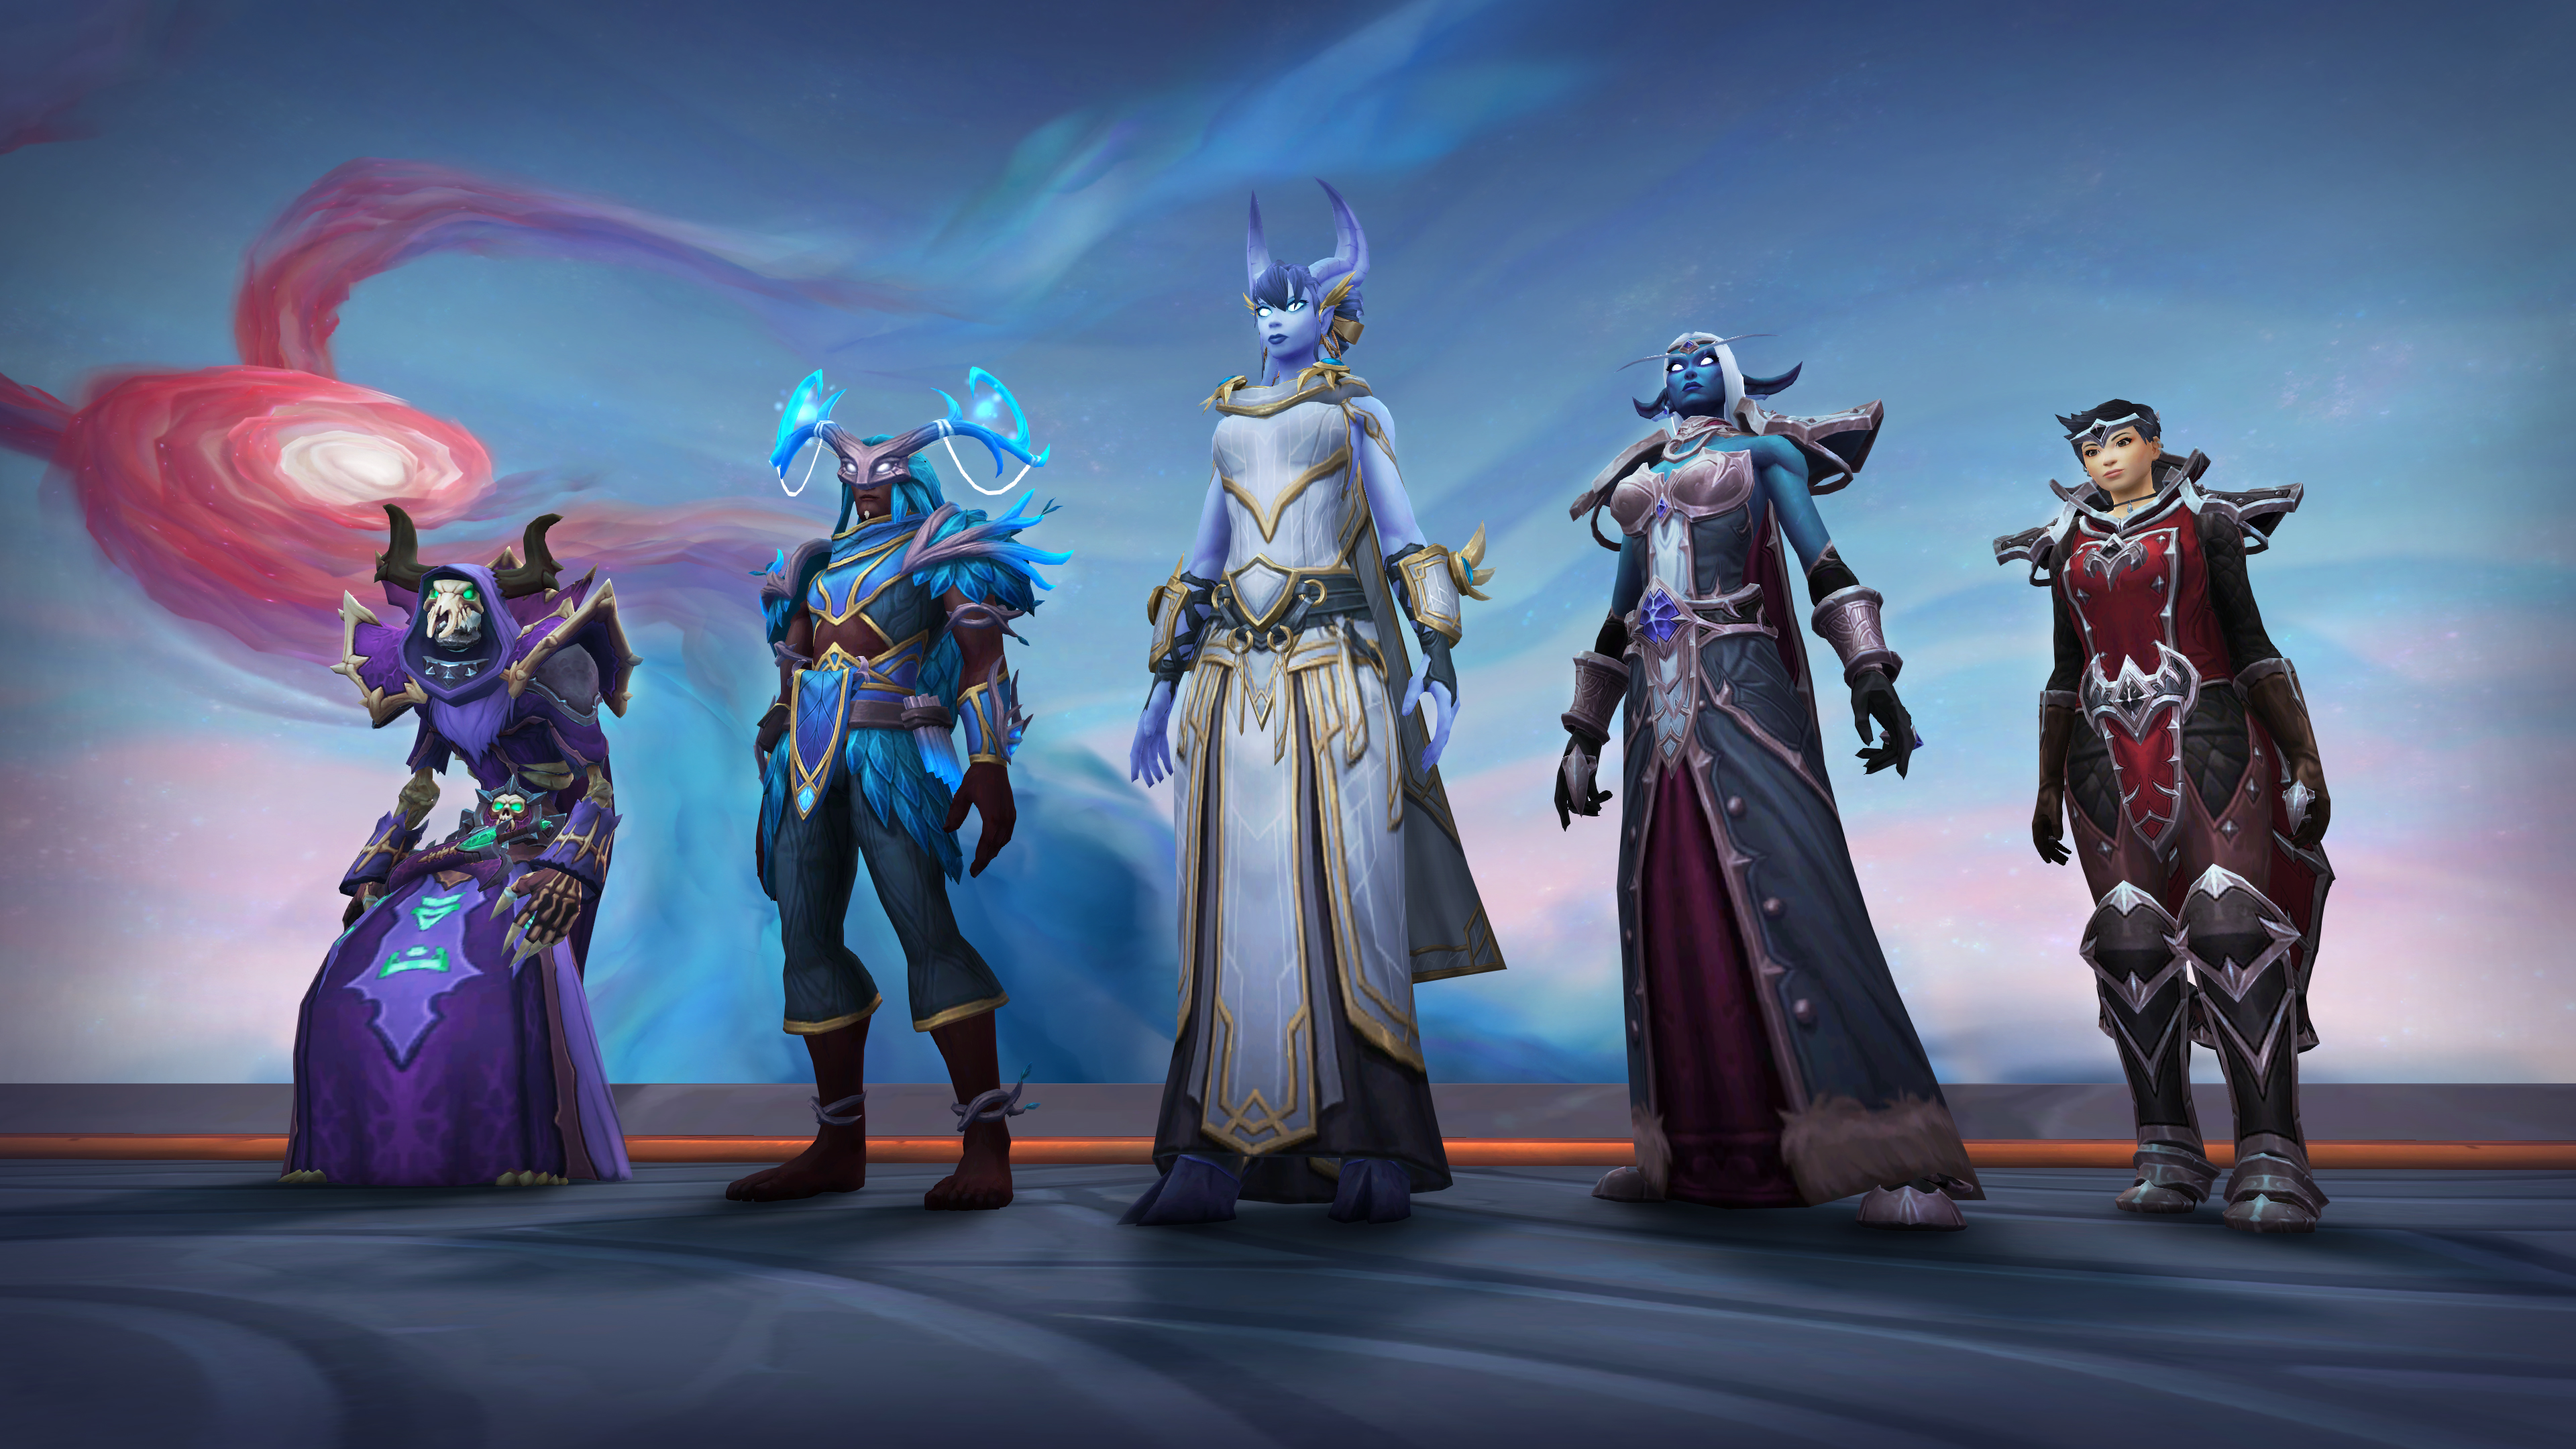 World of Warcraft Shadowlands: Chains of Domination